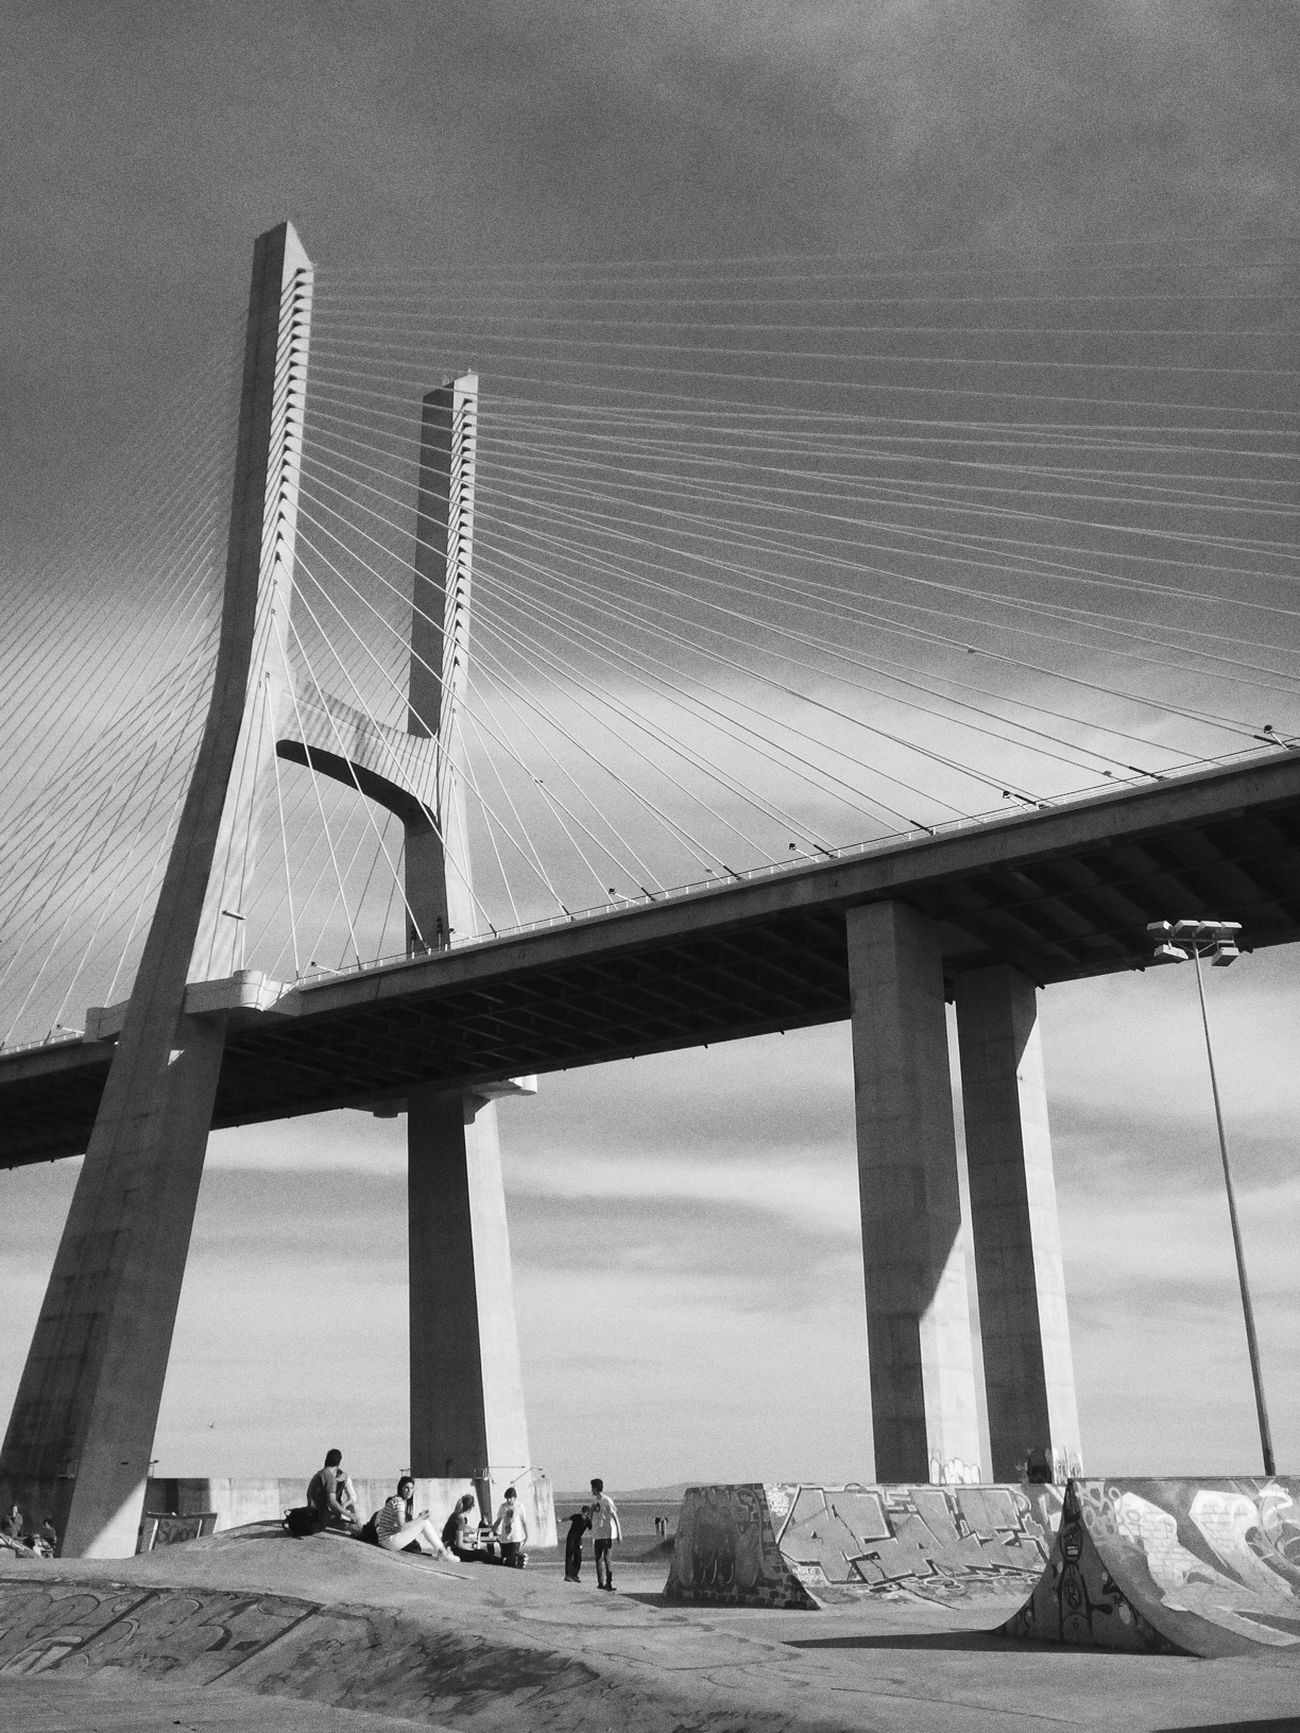 Bridge II . Parque Das Nações Lisboa Lisbon Portugal First Eyeem Photo EyeEm Best Shots - Black + White EyeEm Best Shots - Architecture Urbanphotography Architecture_bw Monochrome